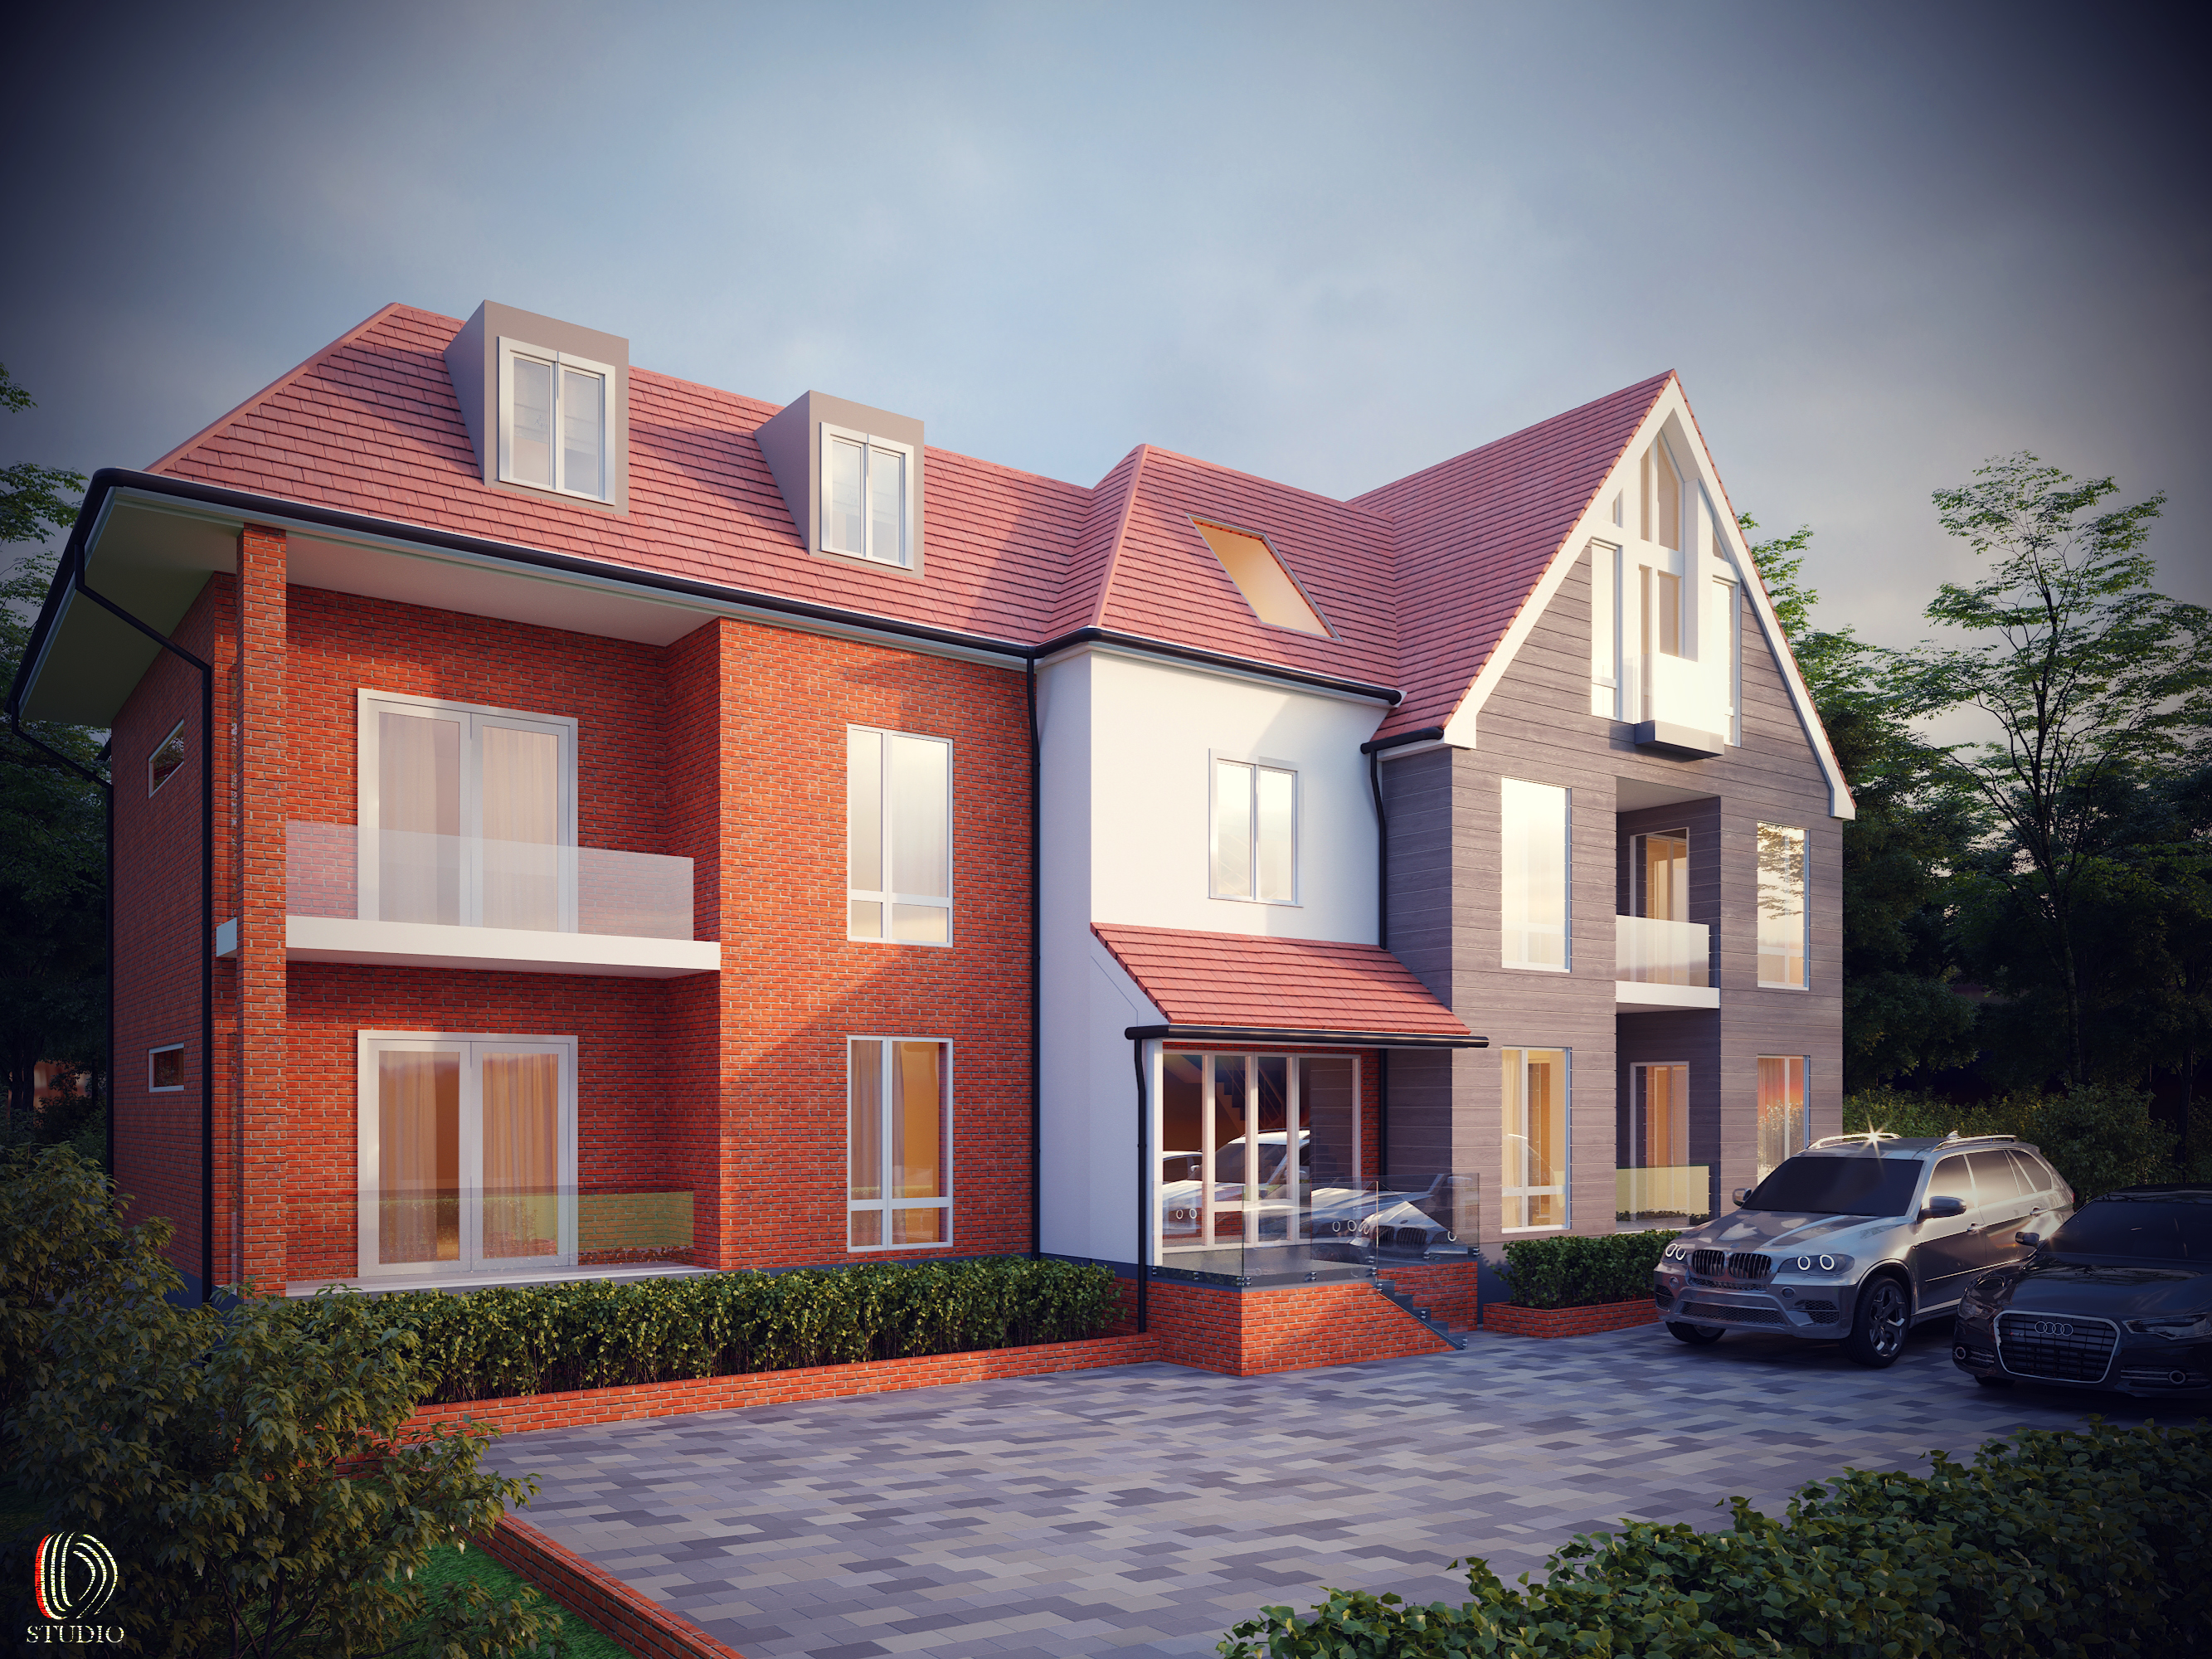 114-10-57 Woodcrest Road Purley